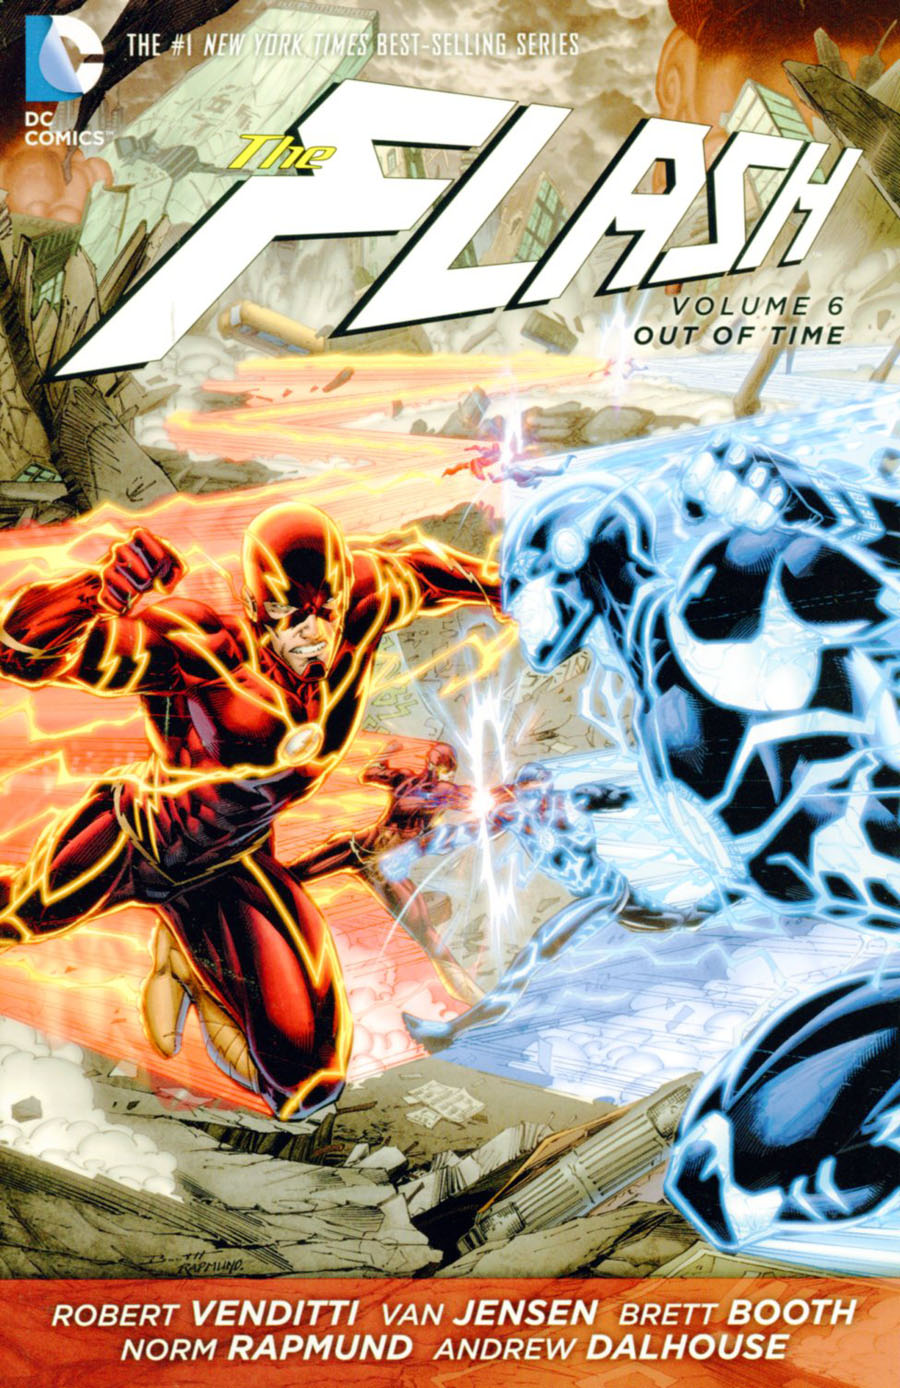 Flash (New 52) Vol 6 Out Of Time TP